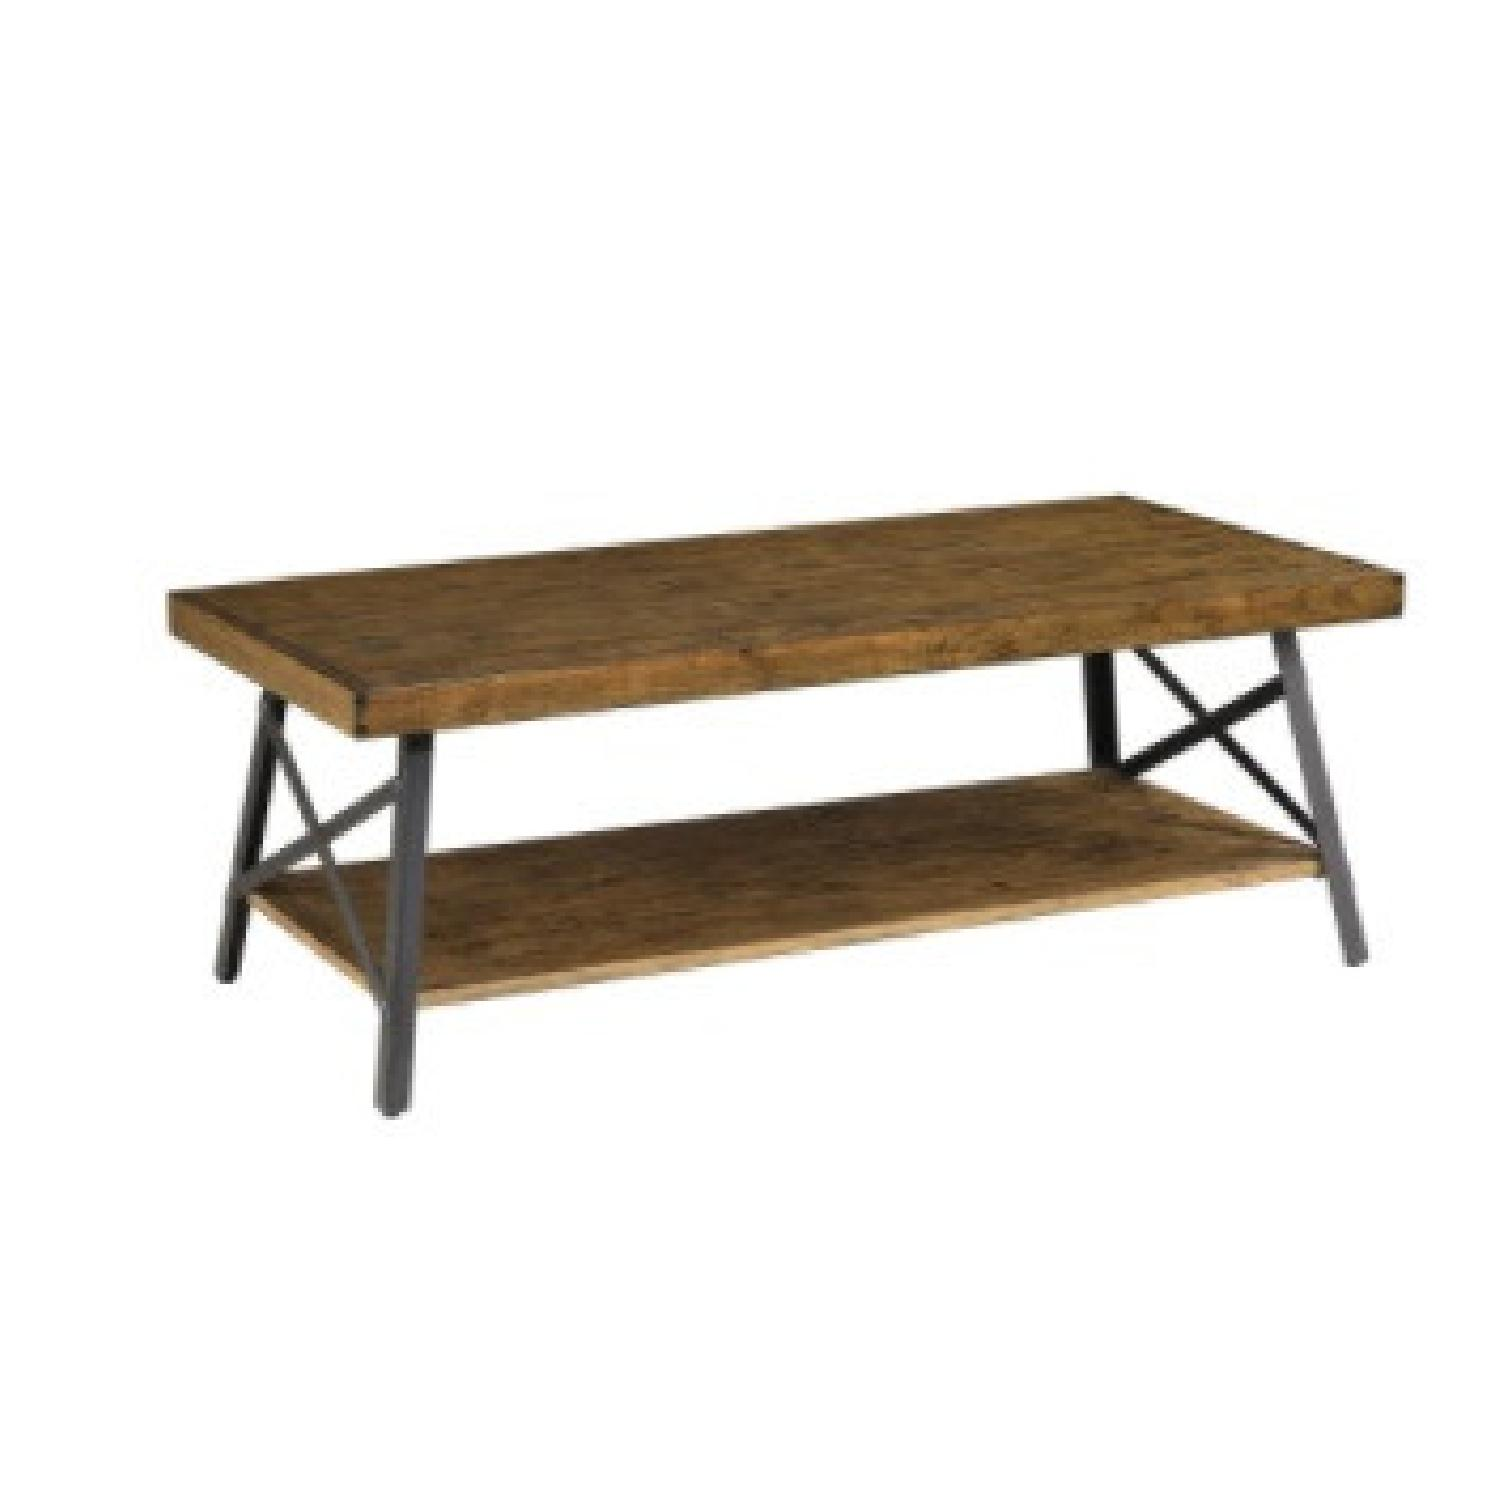 Wood Coffee Table with Metal Legs - image-6